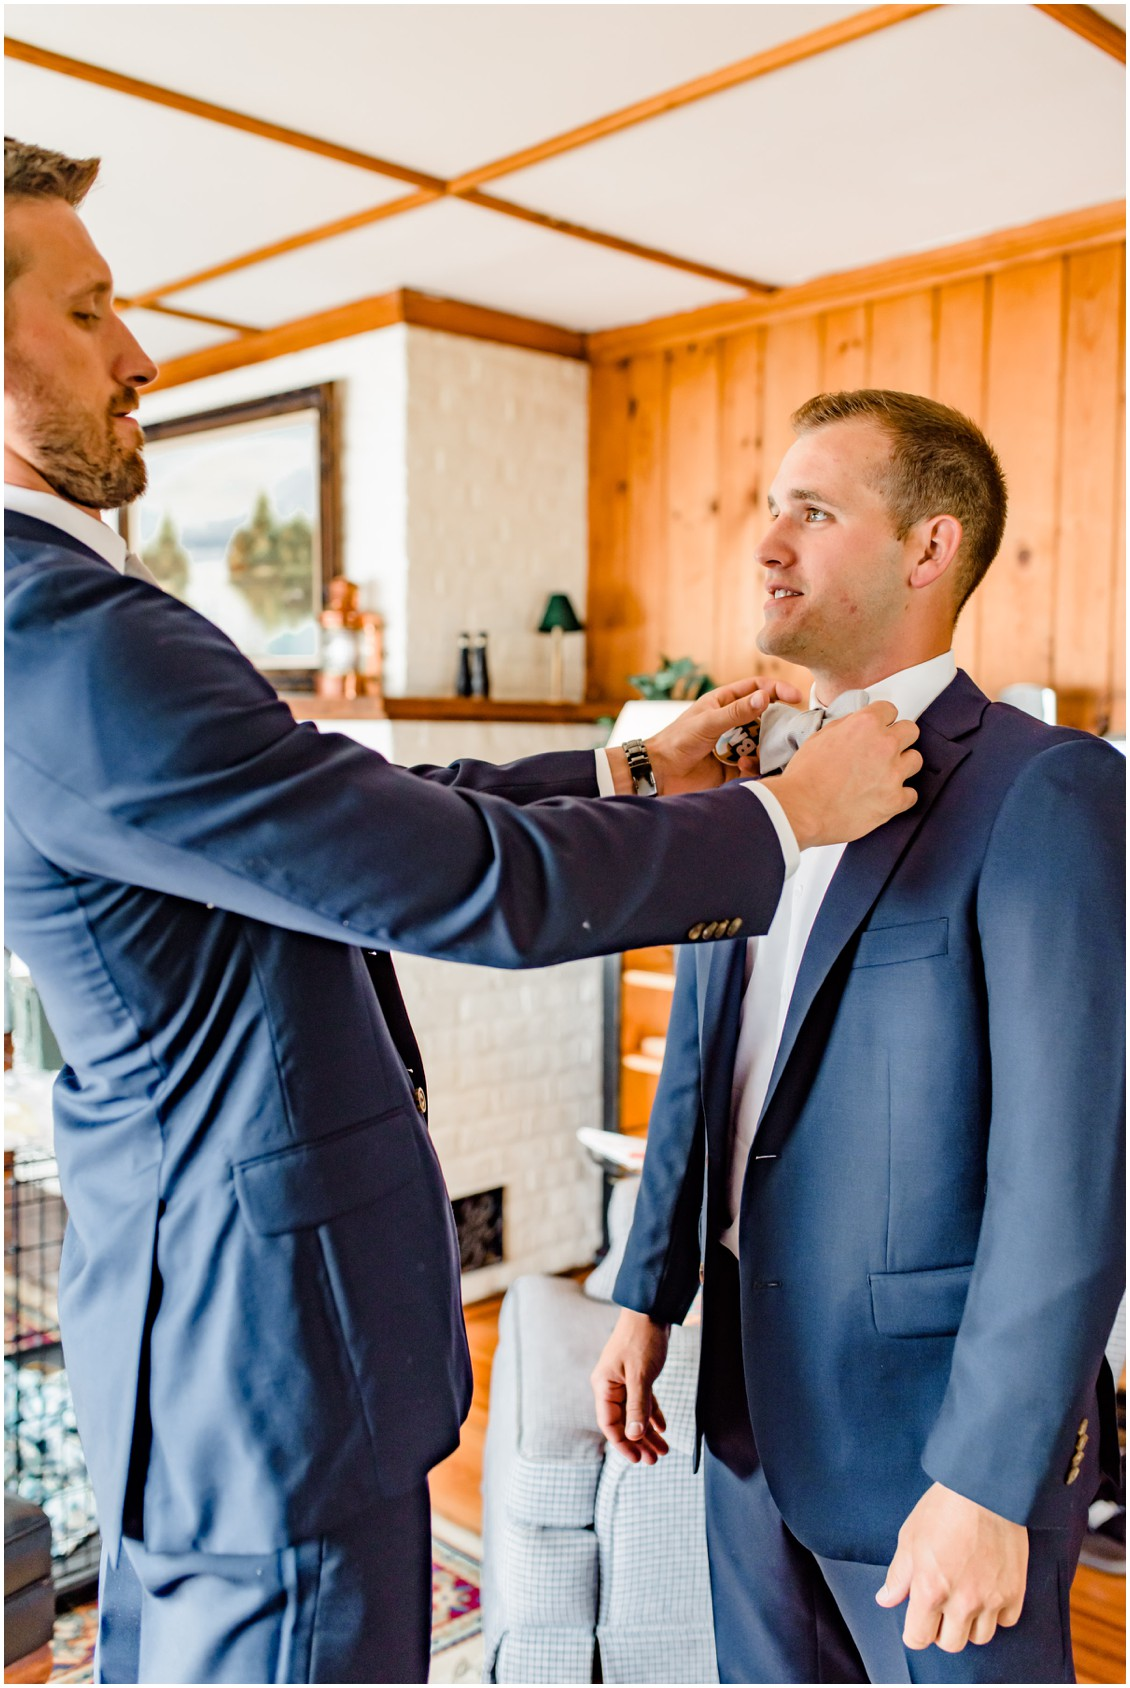 Groom and groomsmen getting ready | Navy Suits | My Eastern Shore Wedding |